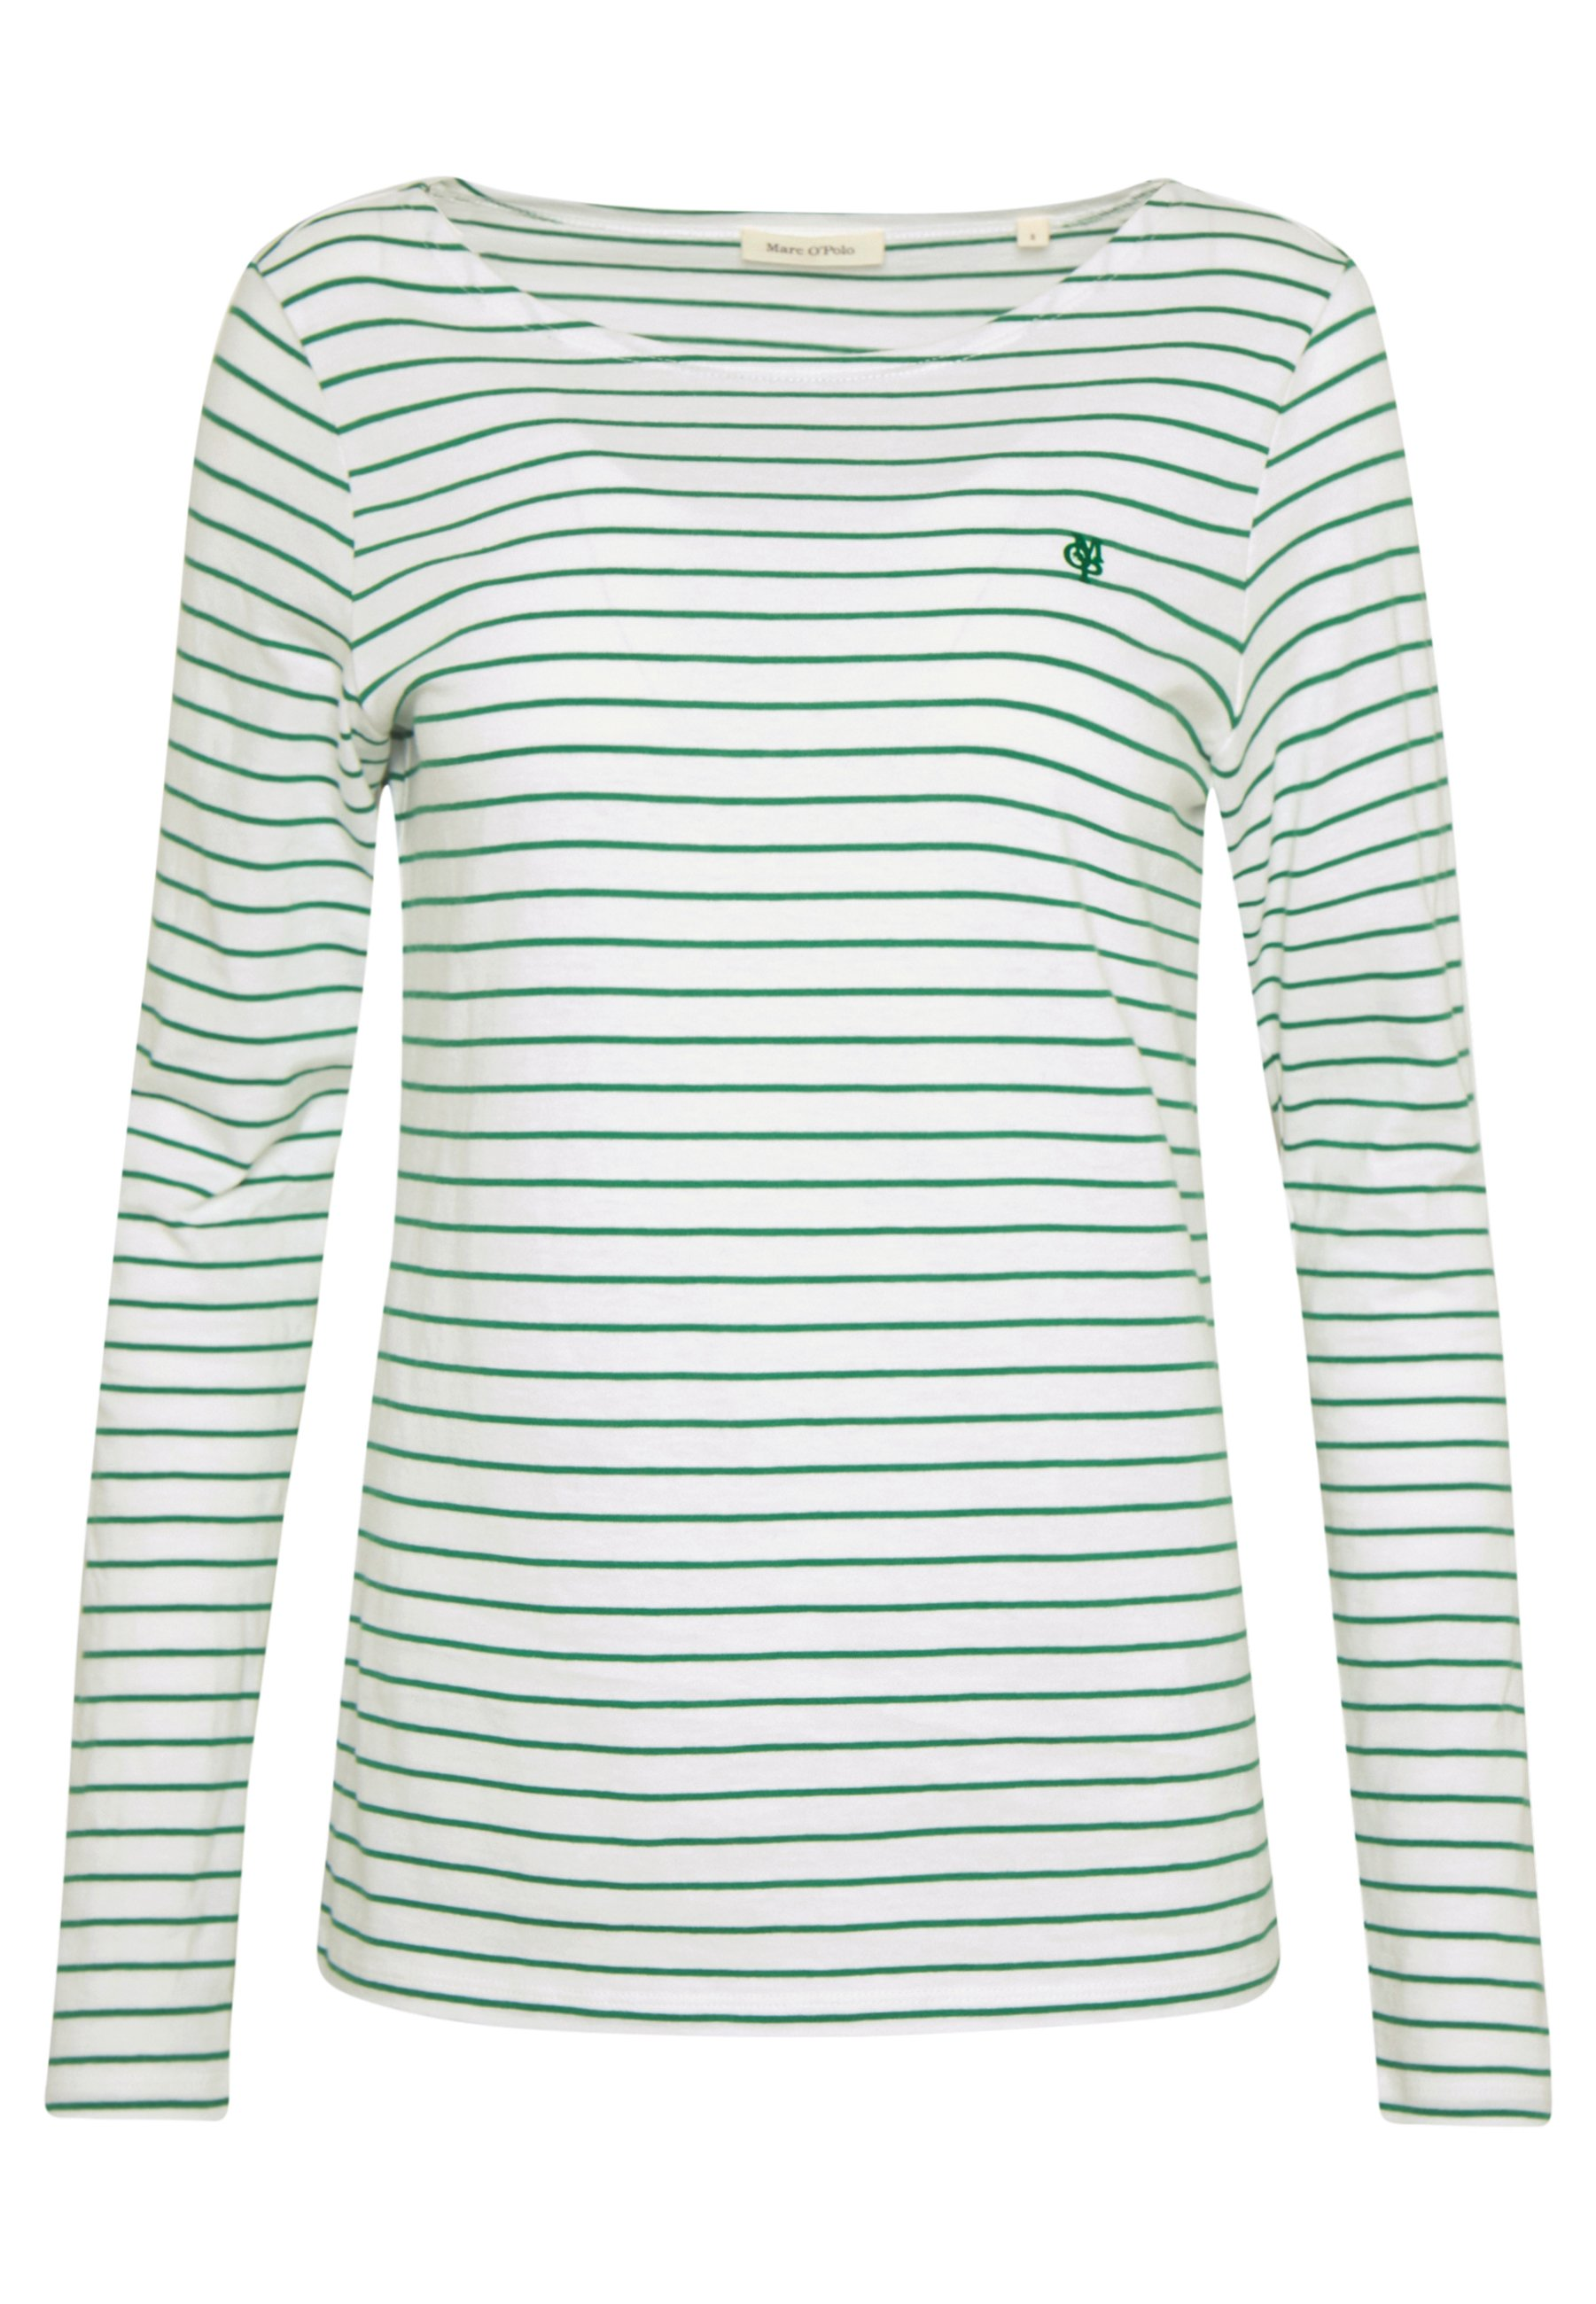 Marc O'polo Long Sleeve Roundneck Striped - Sleeved Top Soft White UK